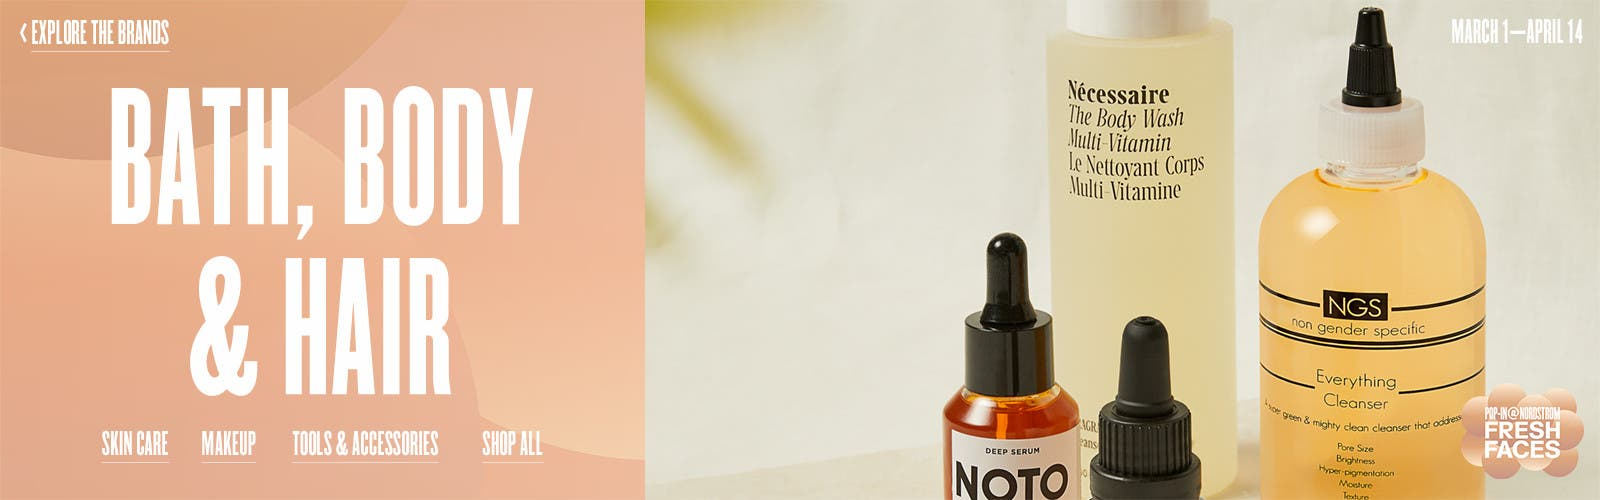 Pop-In@Nordstrom Fresh Faces. March 1 to April 14. Natural bath, body and hair care.